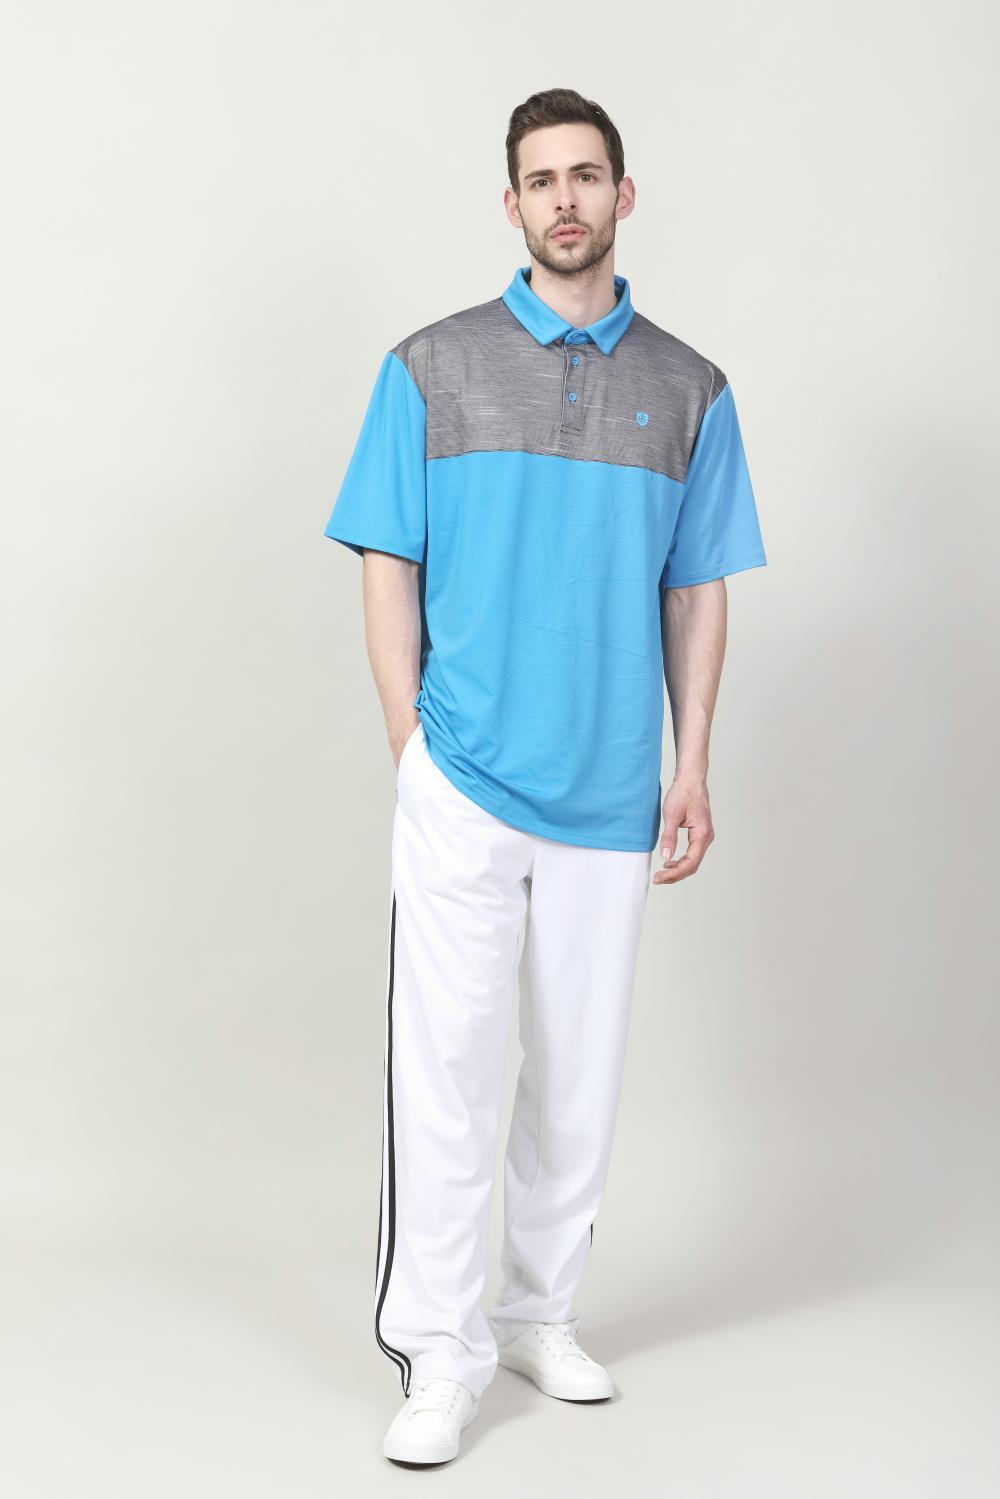 MEN'S DIGITAL PRINTED GOLF POLO SHIRT